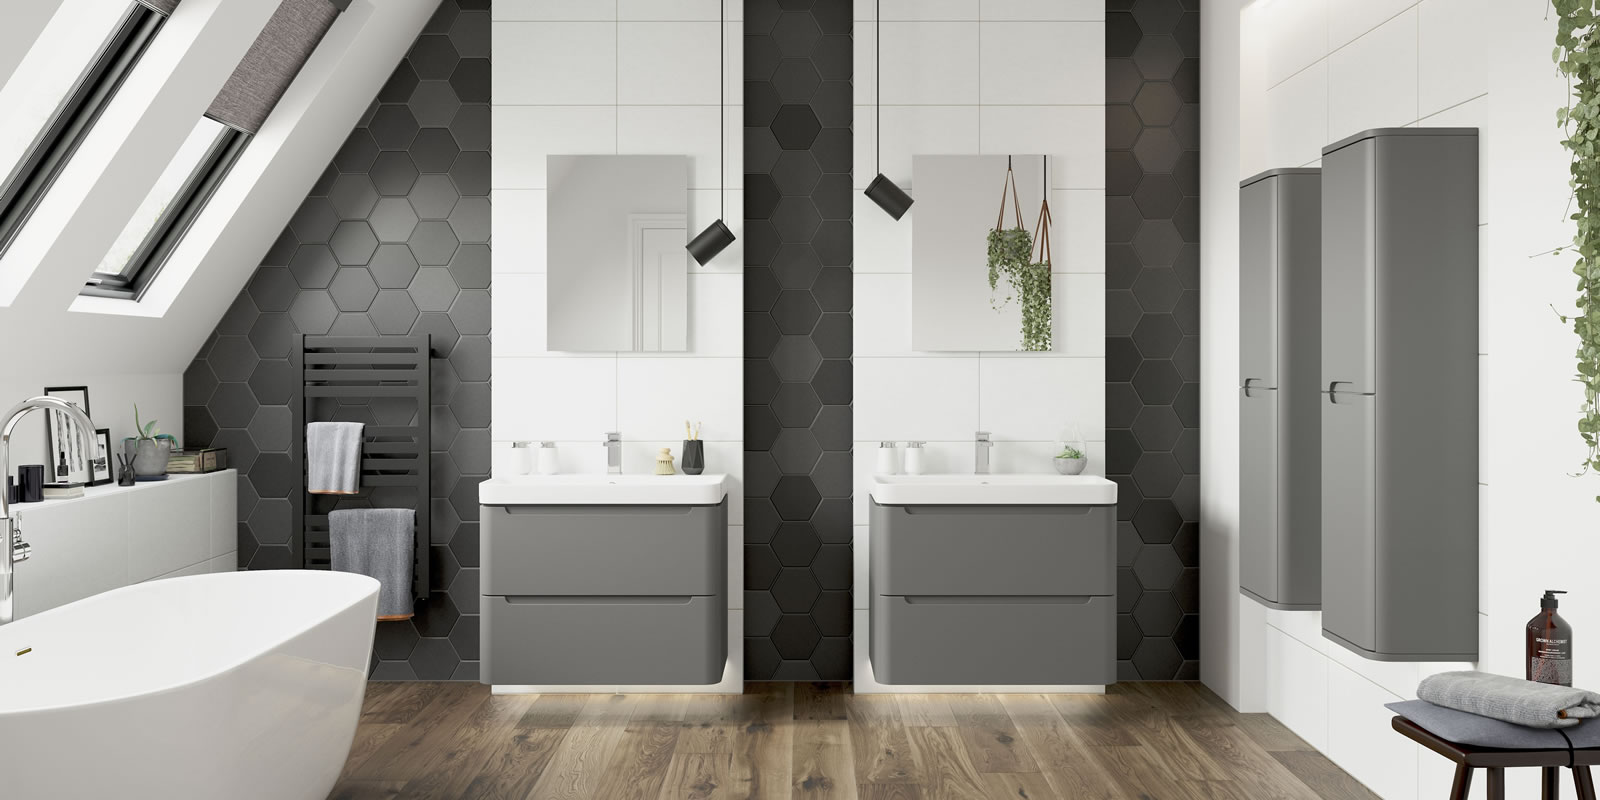 mya bathrooms slider background image 1